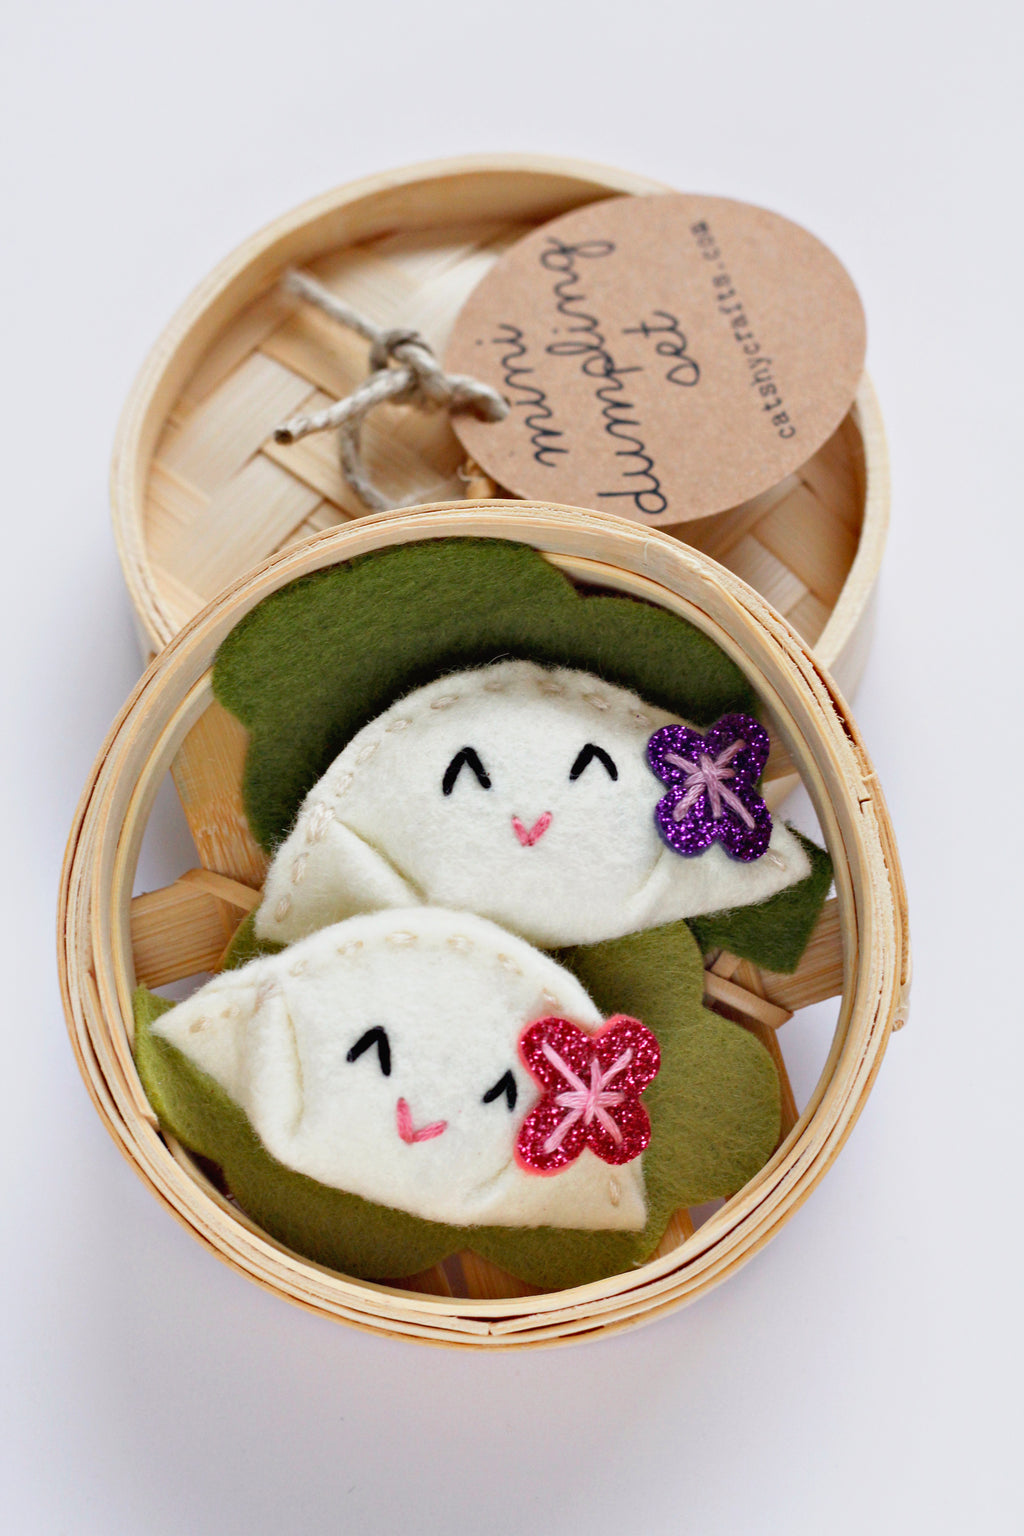 Set of Two Felt Dumplings in Bamboo Steamer